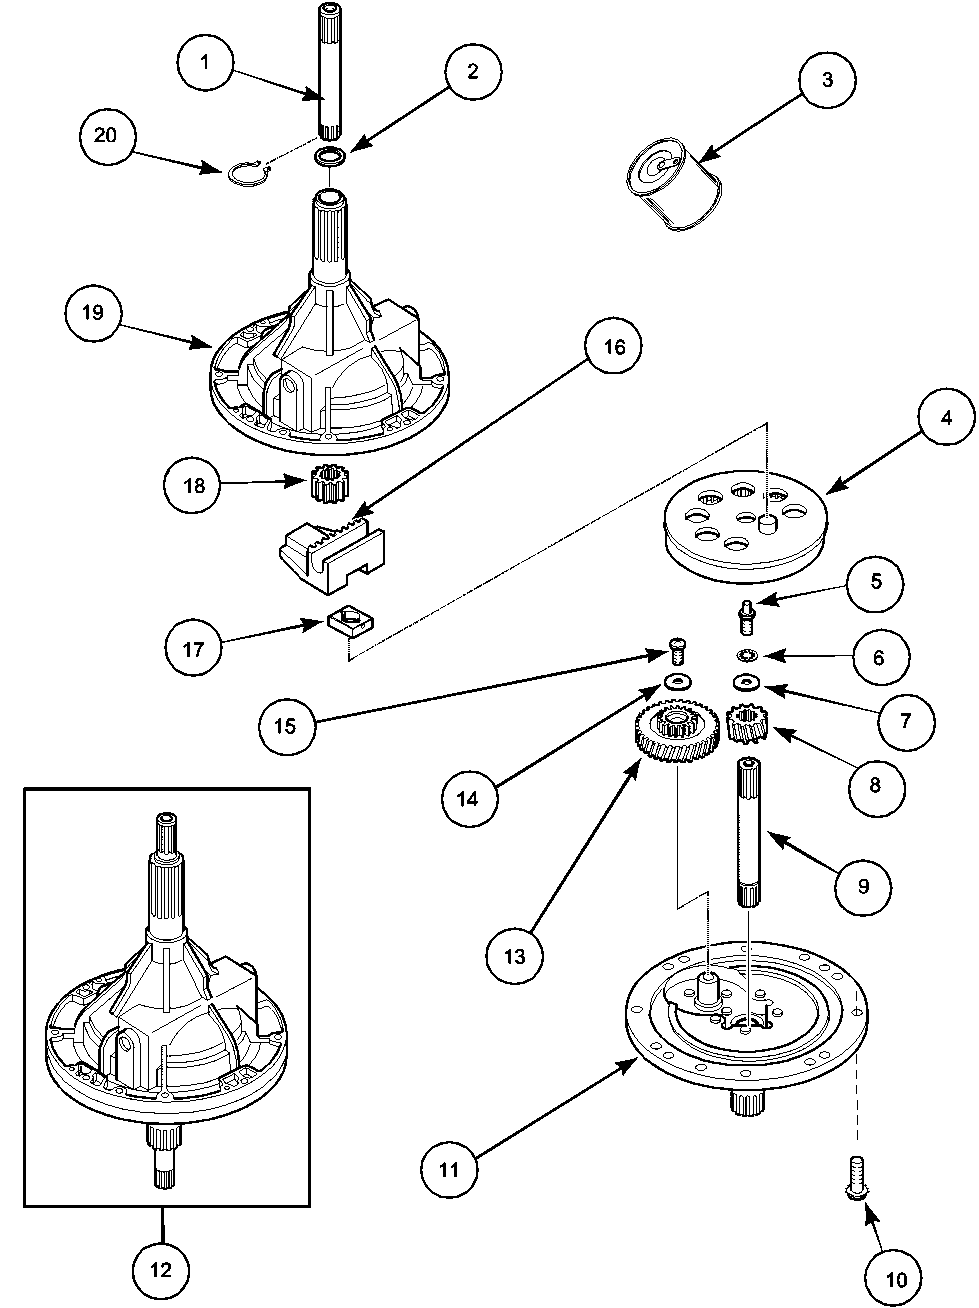 Wiring Diagram Whirlpool Top Load Washer : 40 Wiring